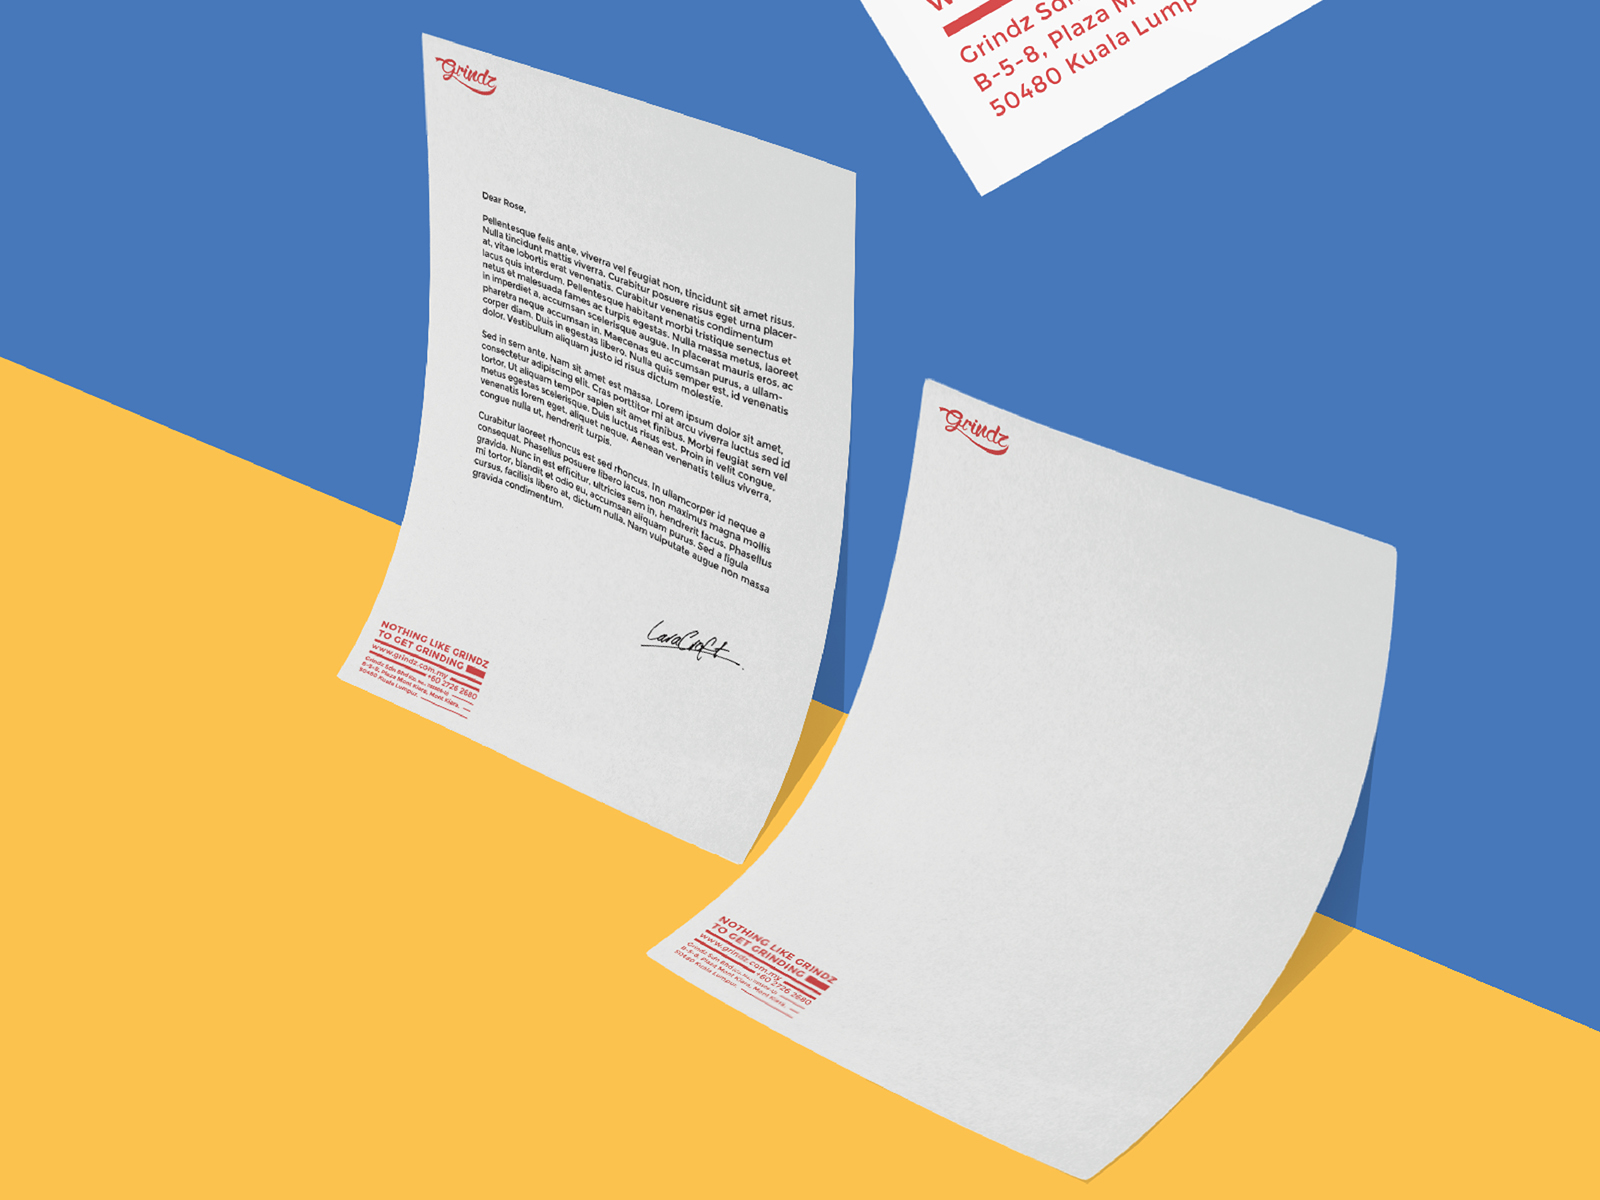 Grindz supplement brand collaterals design featuring letterhead with thick to thin lines to show weight loss on solid half blue half yellow background